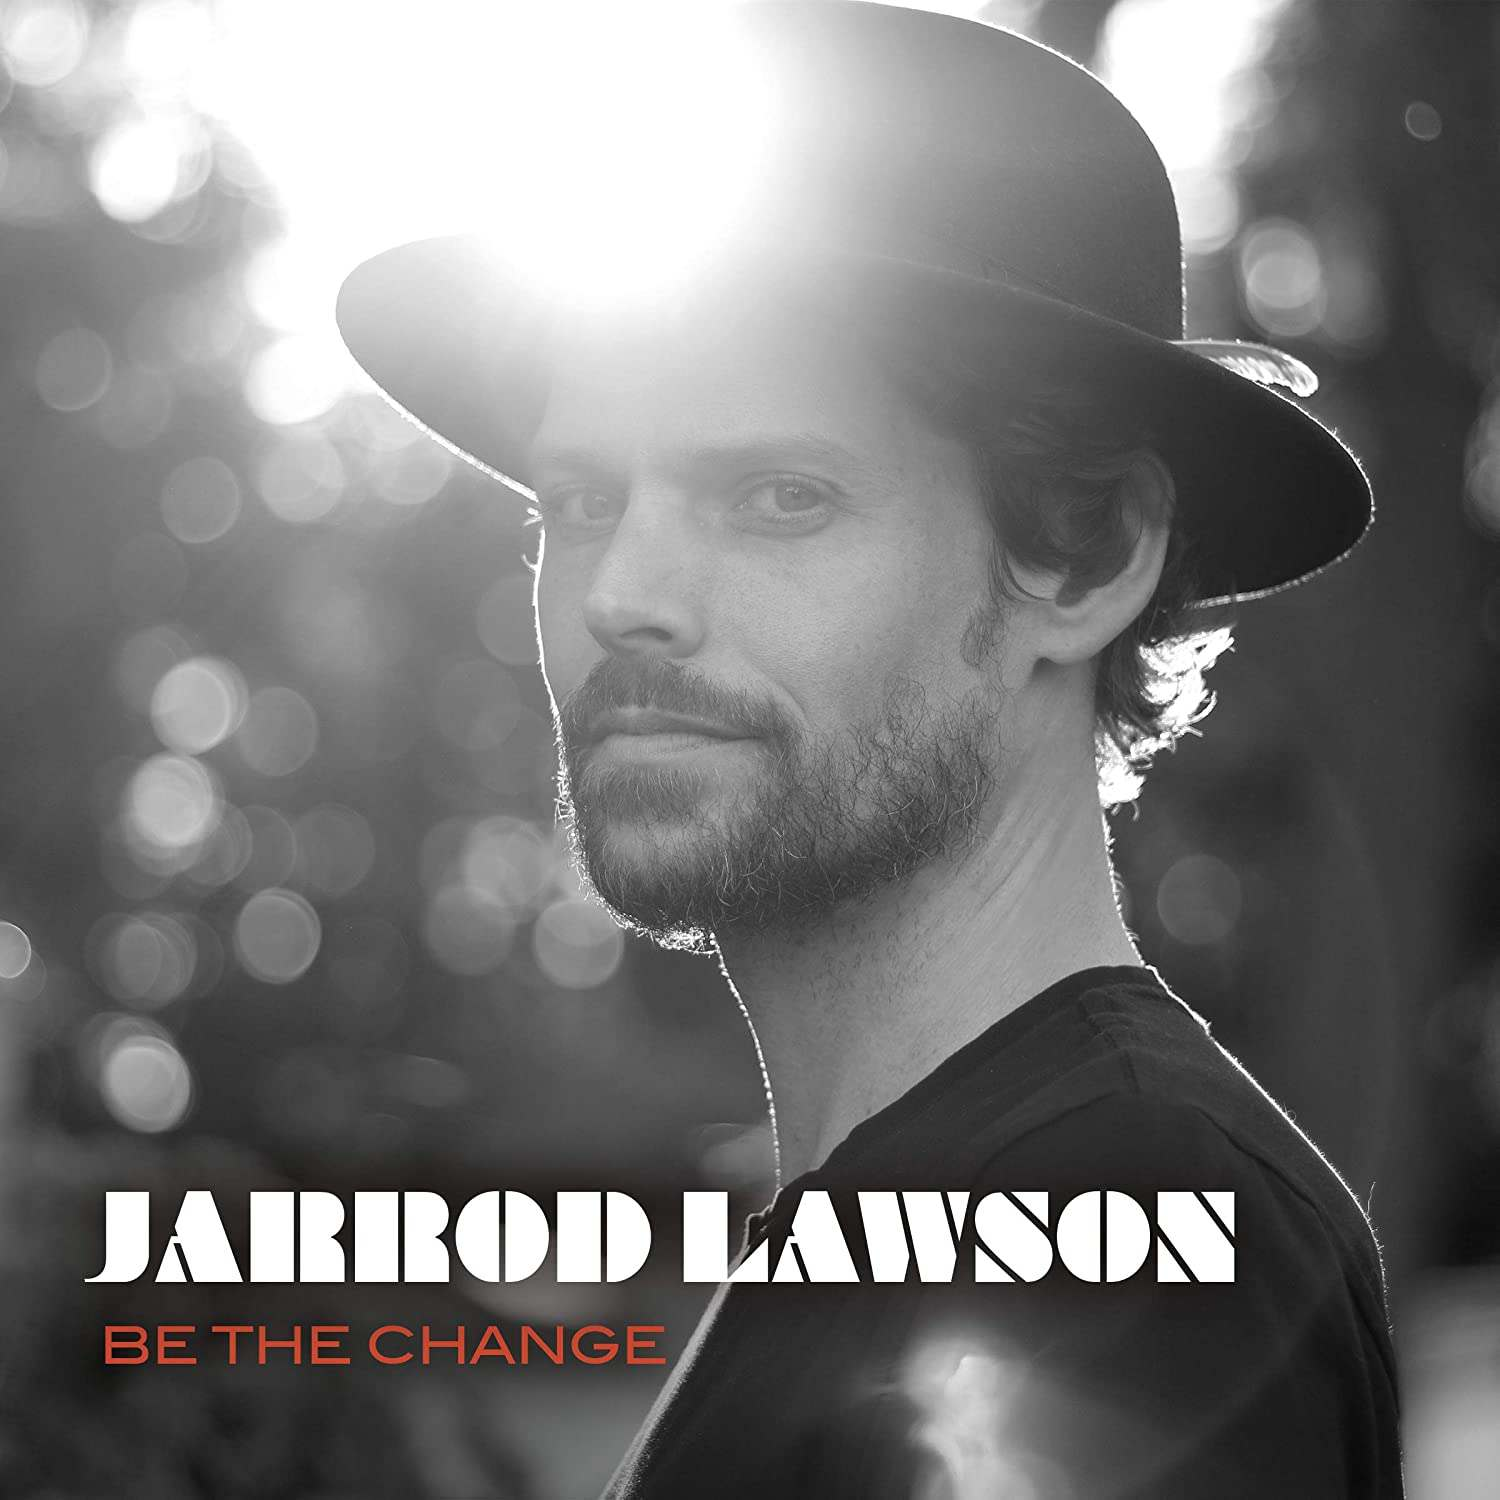 Be The Change / Jarrod Lawson